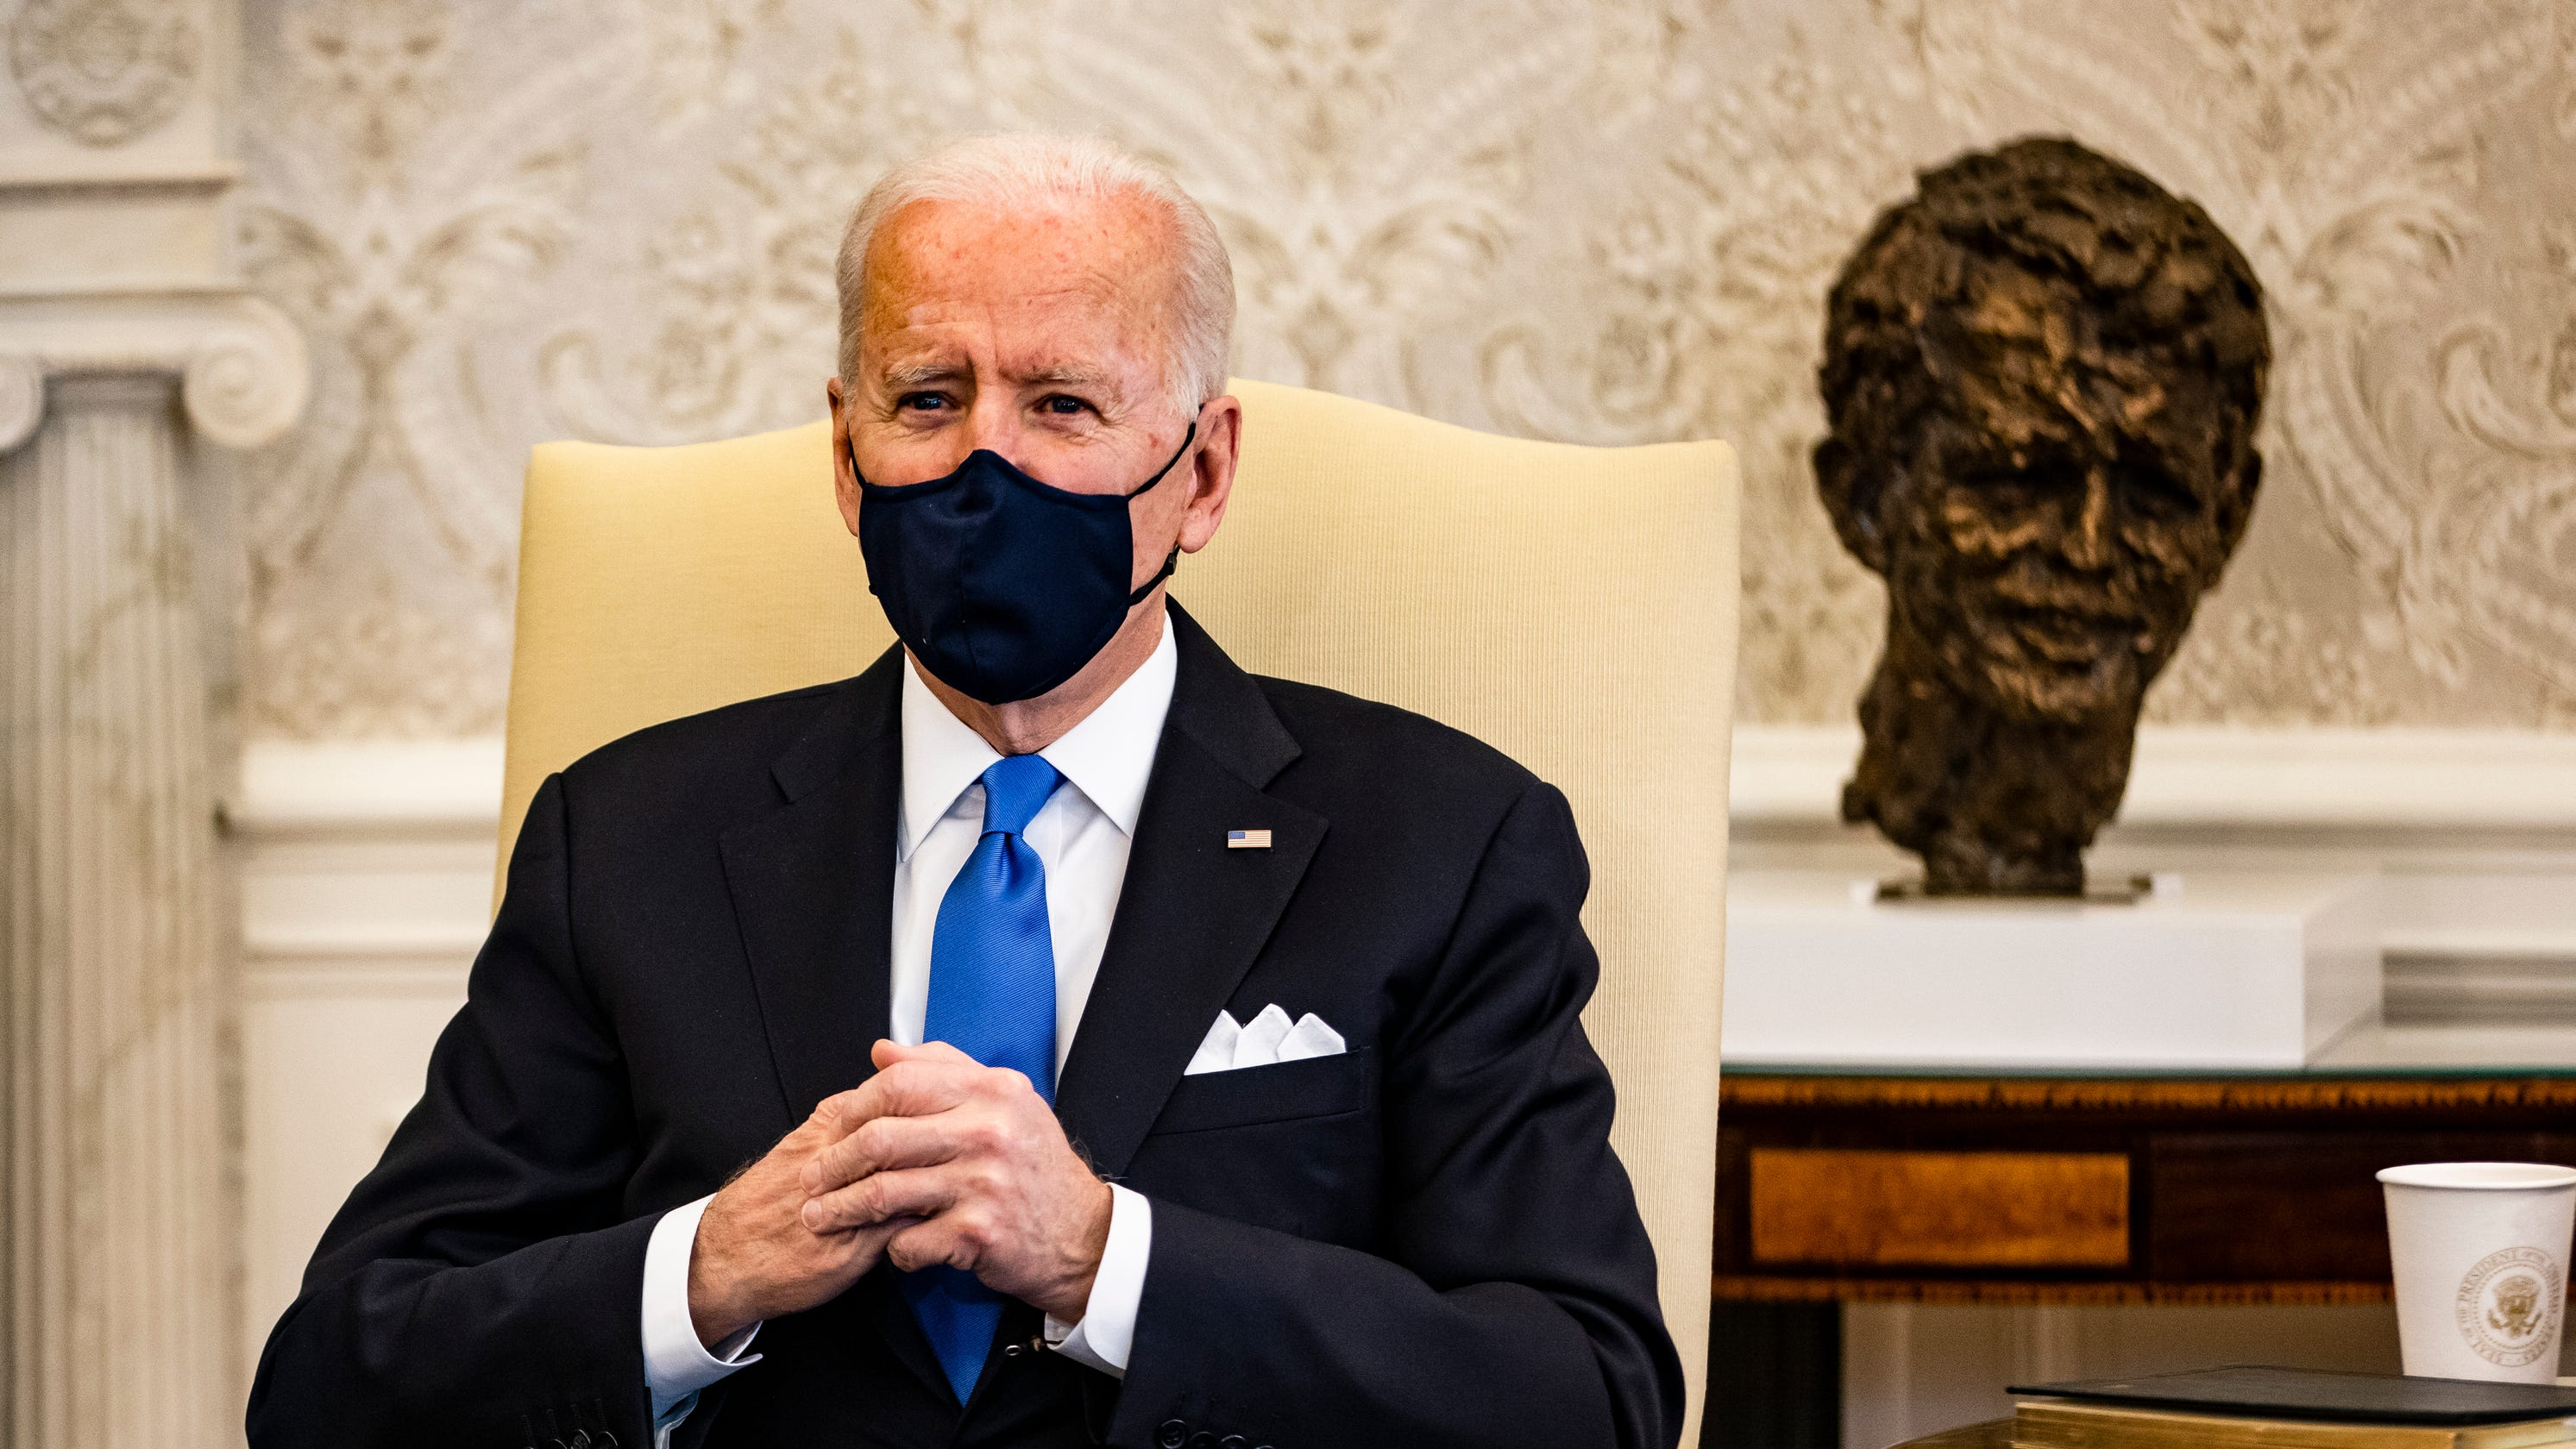 'Dinner table' politics: Why Joe Biden ditched bipartisan dealmaking to pass his COVID-19 relief bill – USA TODAY